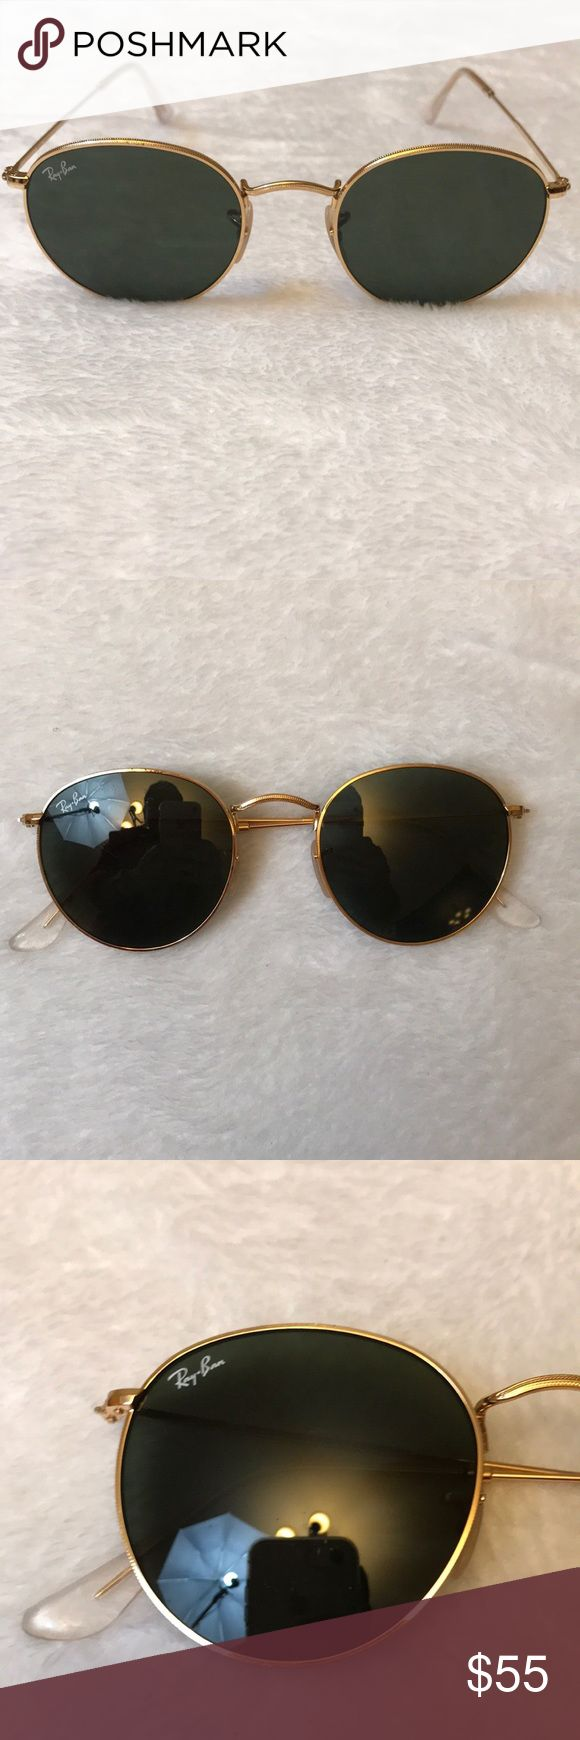 Round frame Ray Ban Sunglasses Round gold frame Ray Ban sunglasses with classic green lenses. I don't believe they are polarized I'm not sure.  They show some signs of wear as can be seen in photos.  Have some scratches and scuffs.  But still have a lot  of life left!  Make me an offer! Ray-Ban Accessories Sunglasses